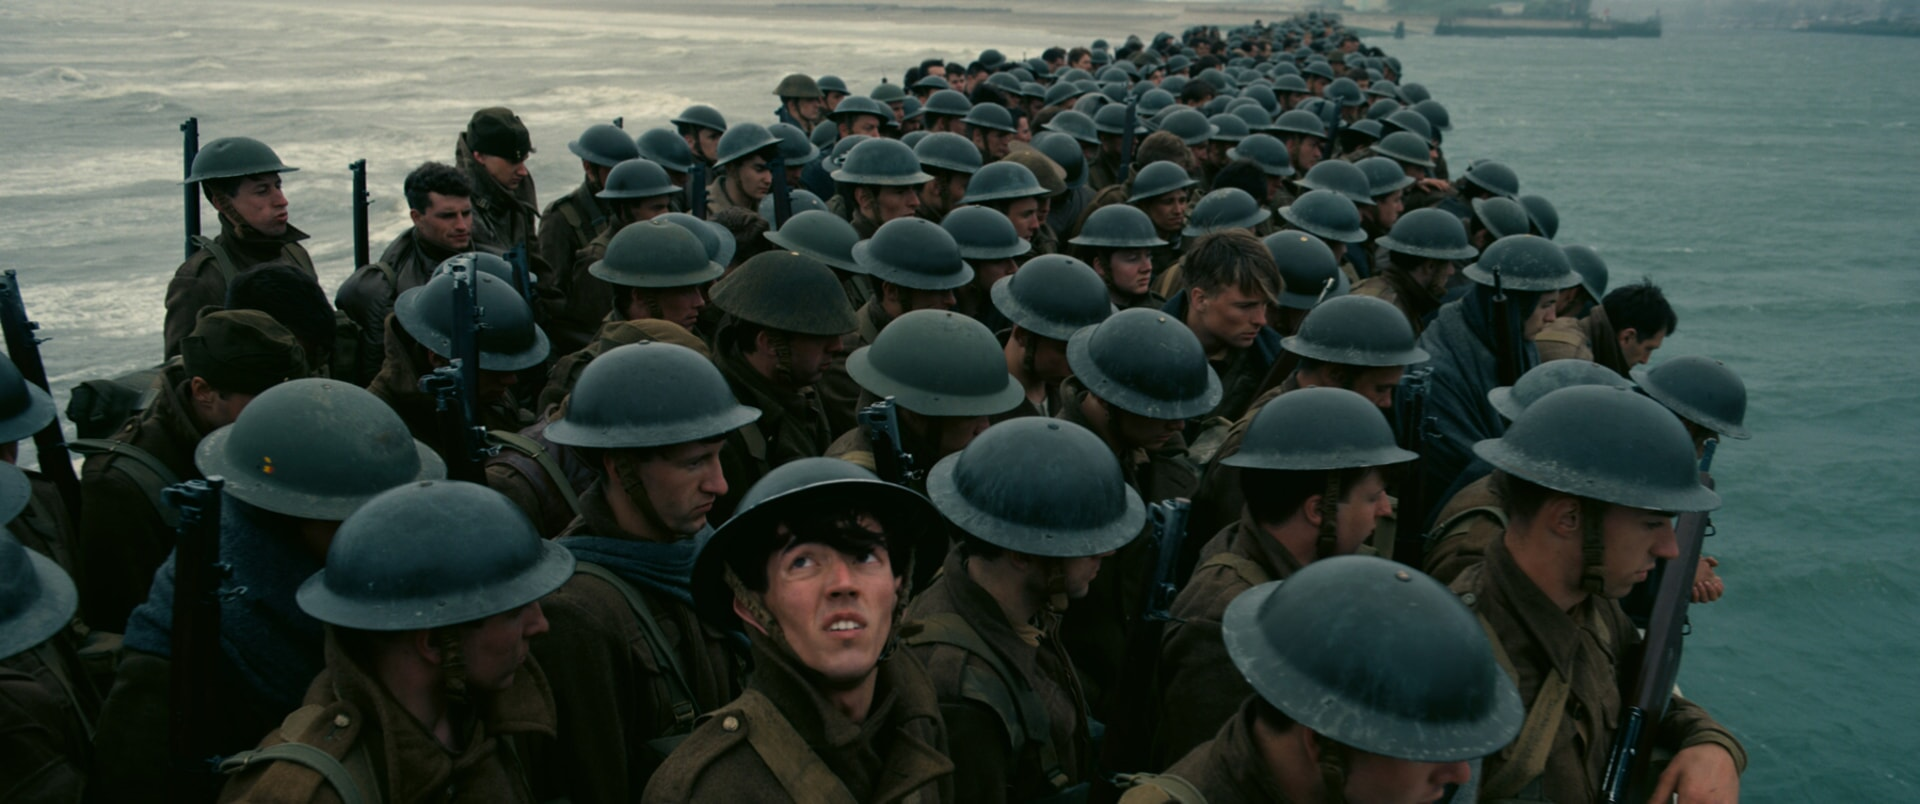 "A scene from Christopher Nolan's new epic action thriller ""DUNKIRK,"" a Warner Bros. Pictures release."